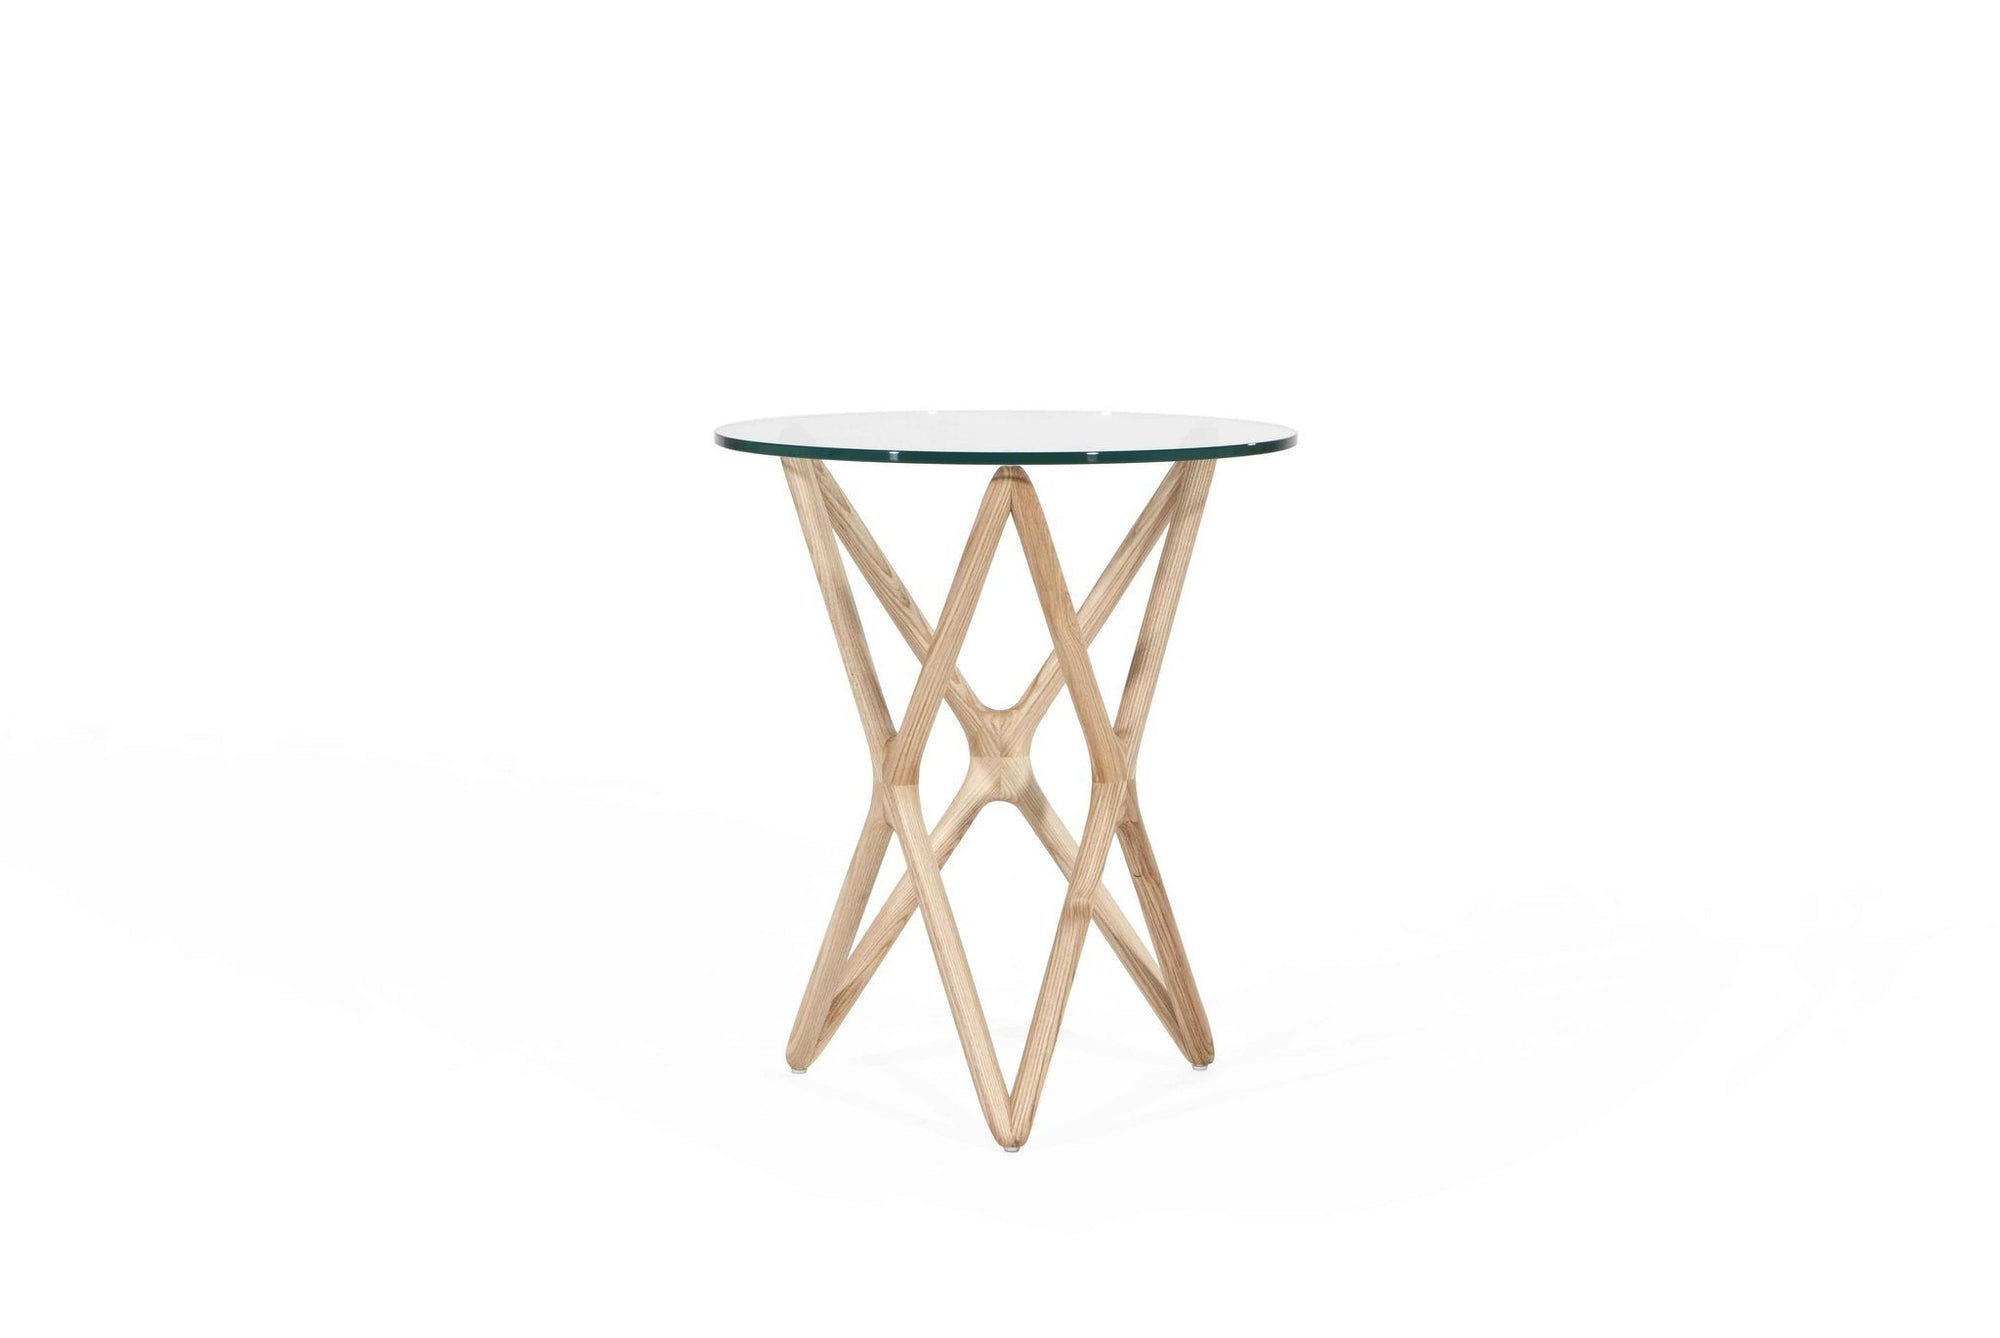 Sean Dix Style Triple X Side Table Diameter 47cm H56cm (Glass / Natural Ash Frame) - Nathan Rhodes Design